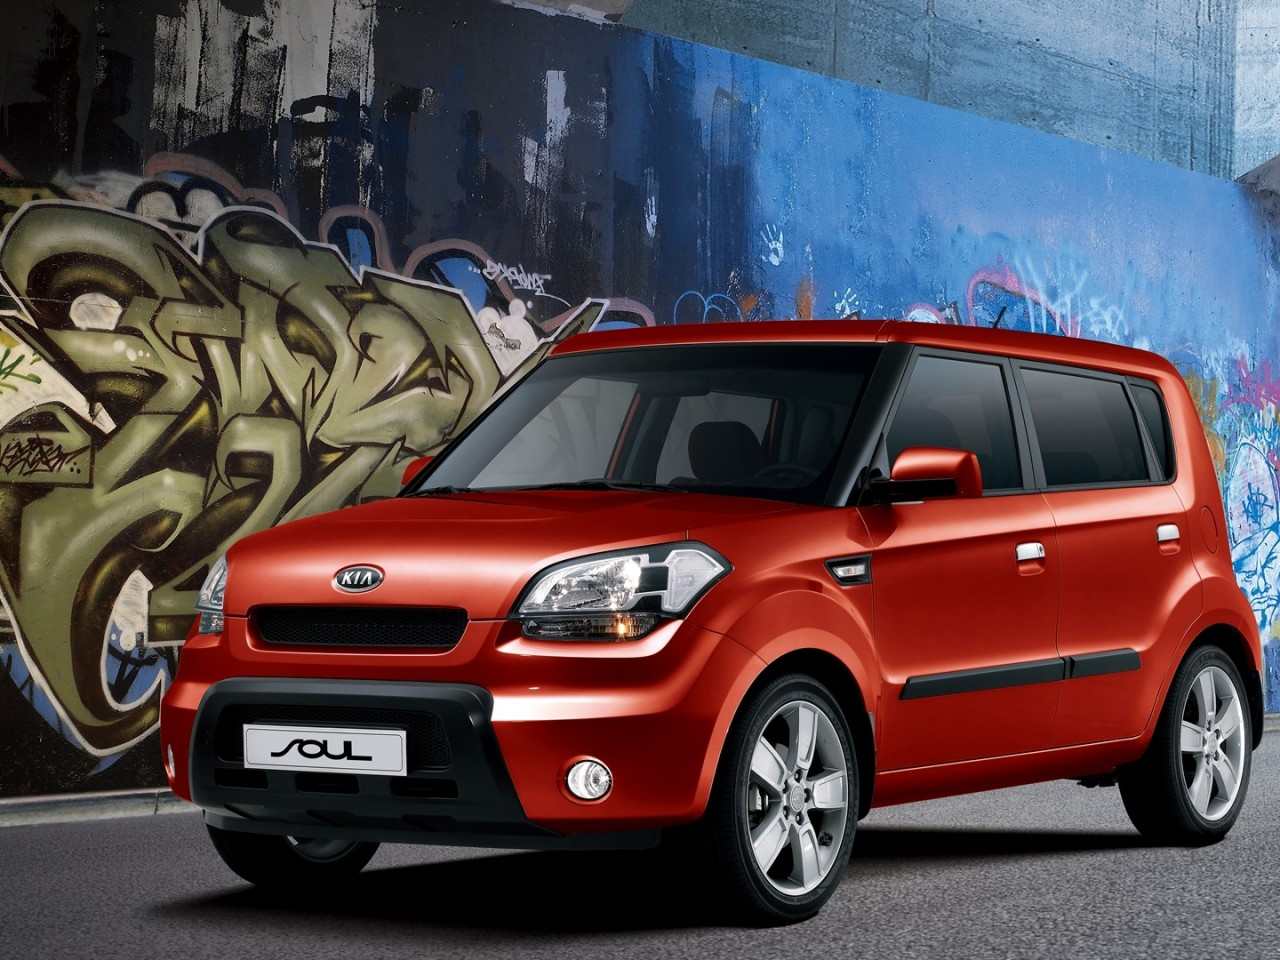 Small Kia Car Wallpaper Hd Wallpapers HD Wallpapers Download free images and photos [musssic.tk]